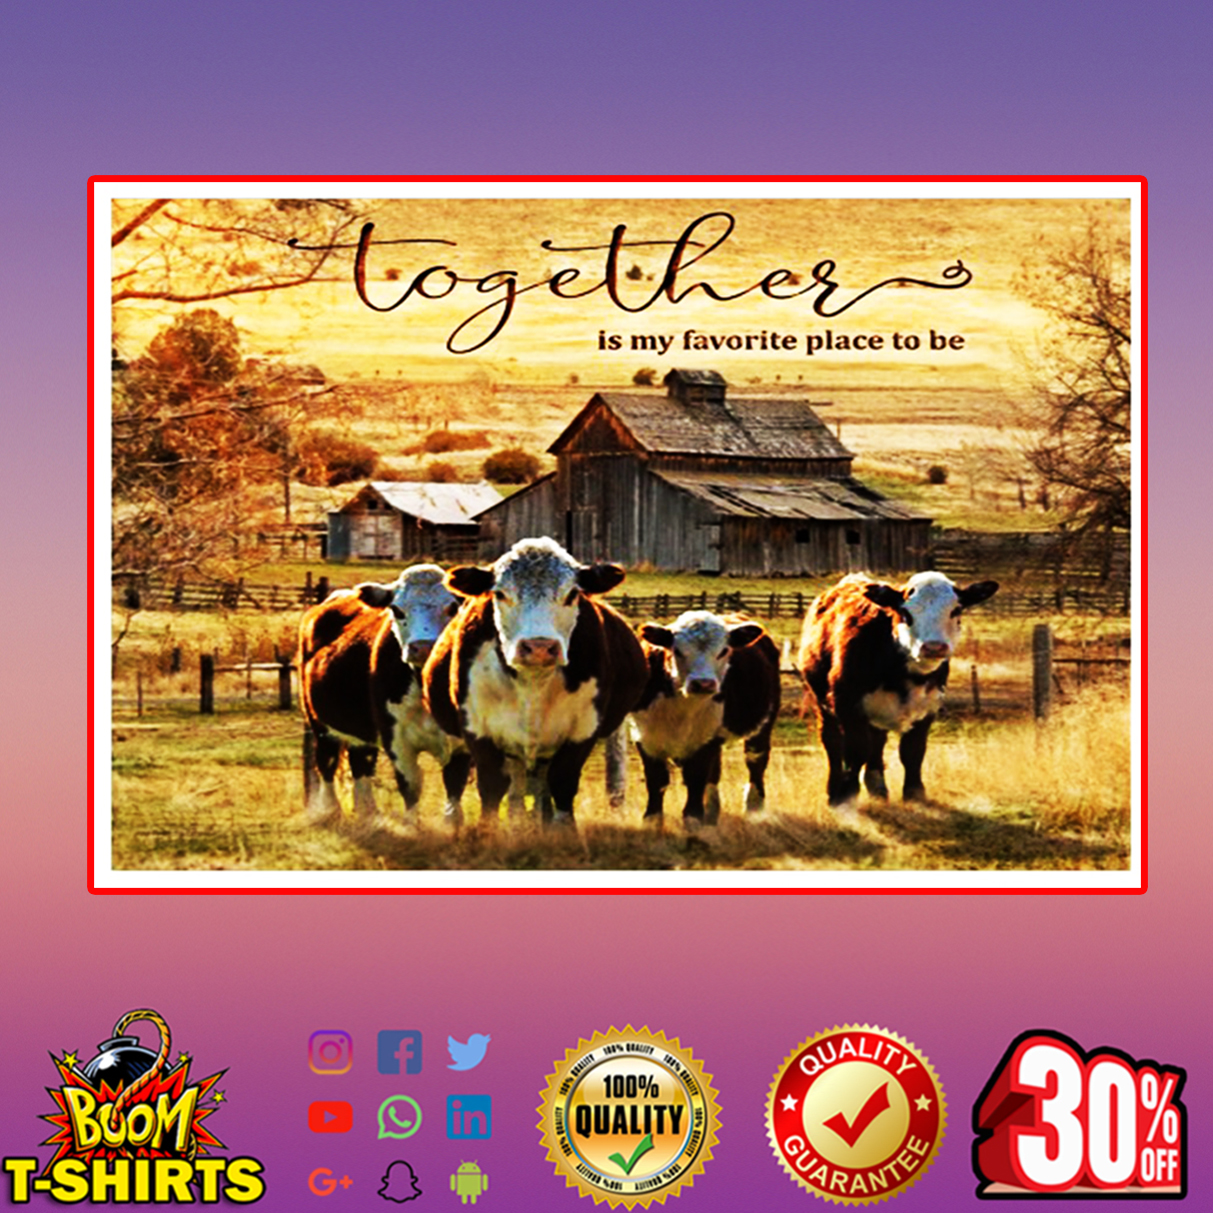 Cow together is my favorite place to be poster 24x16